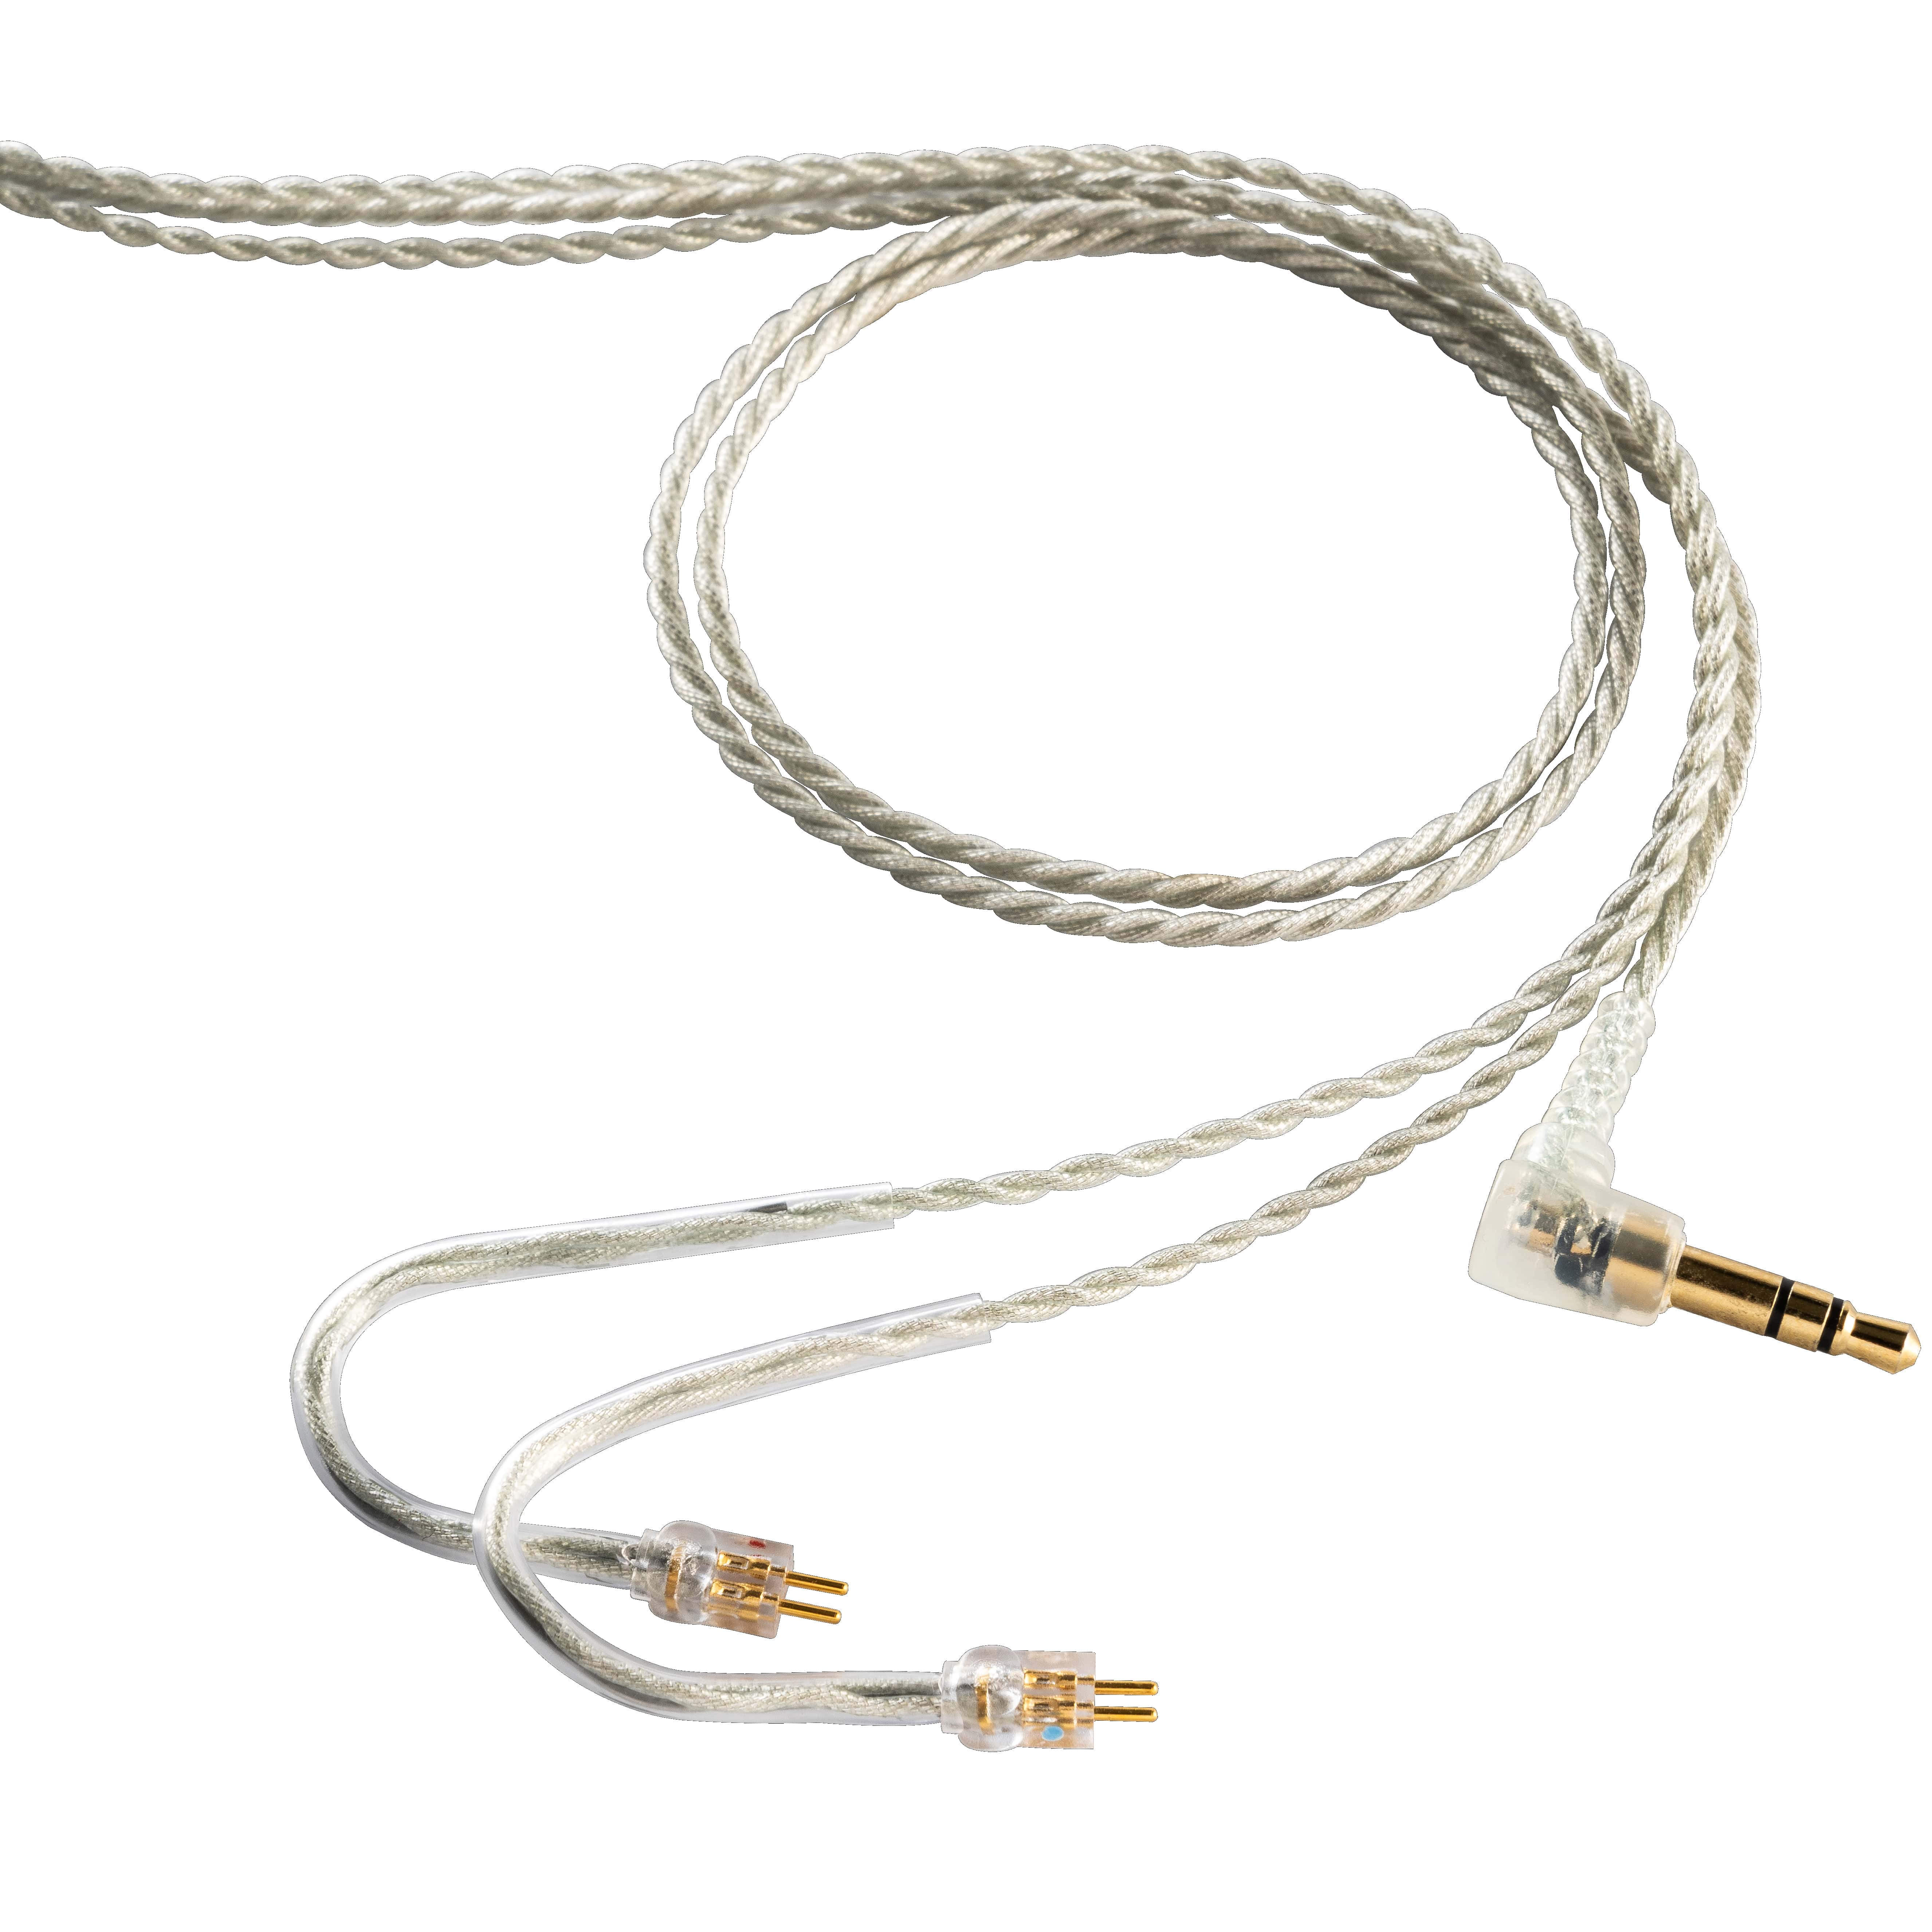 in-ear monitoring cables